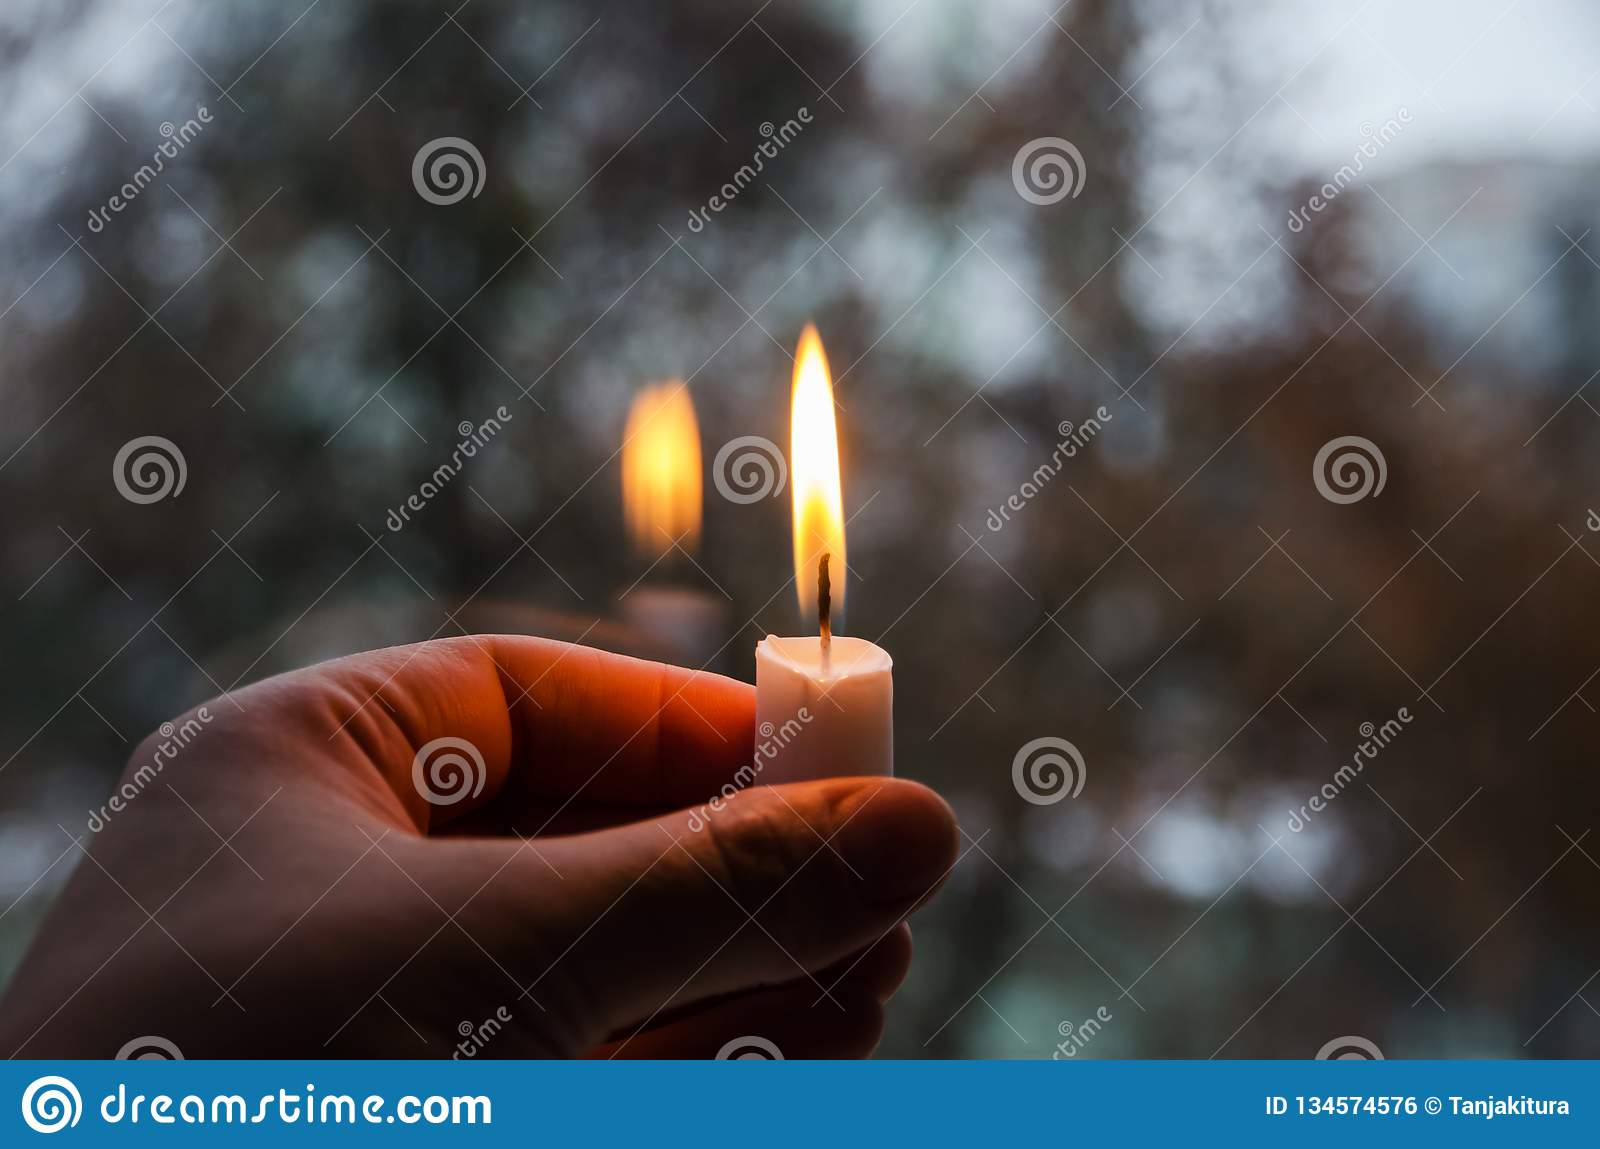 A candle lit in the hand of a woman